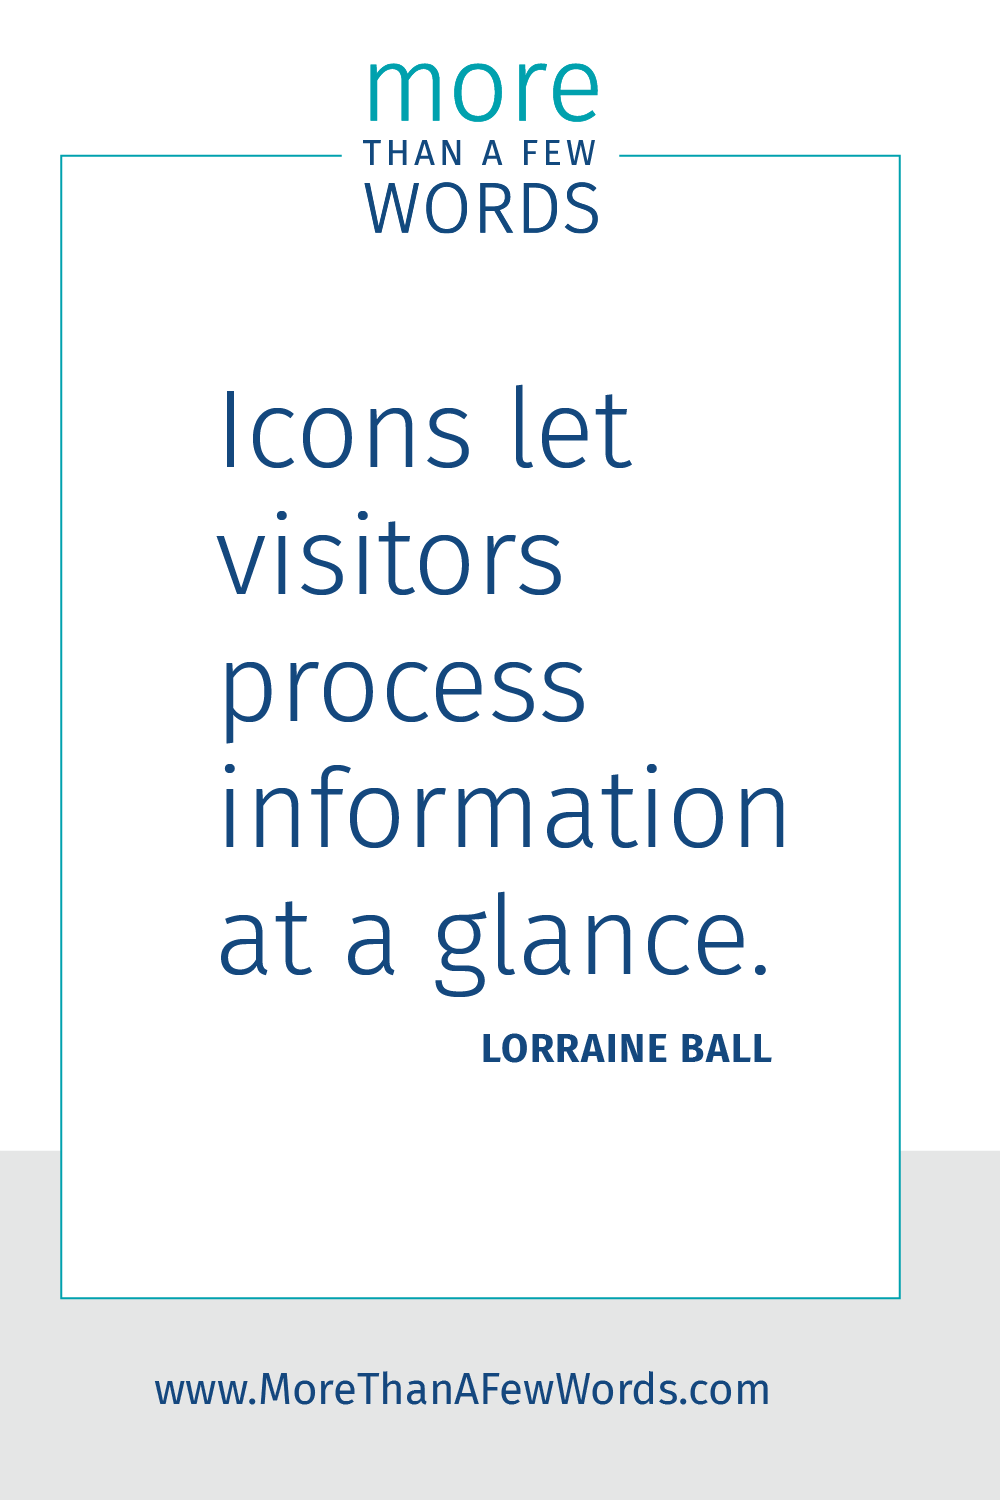 design icons communicate meaning at a glance